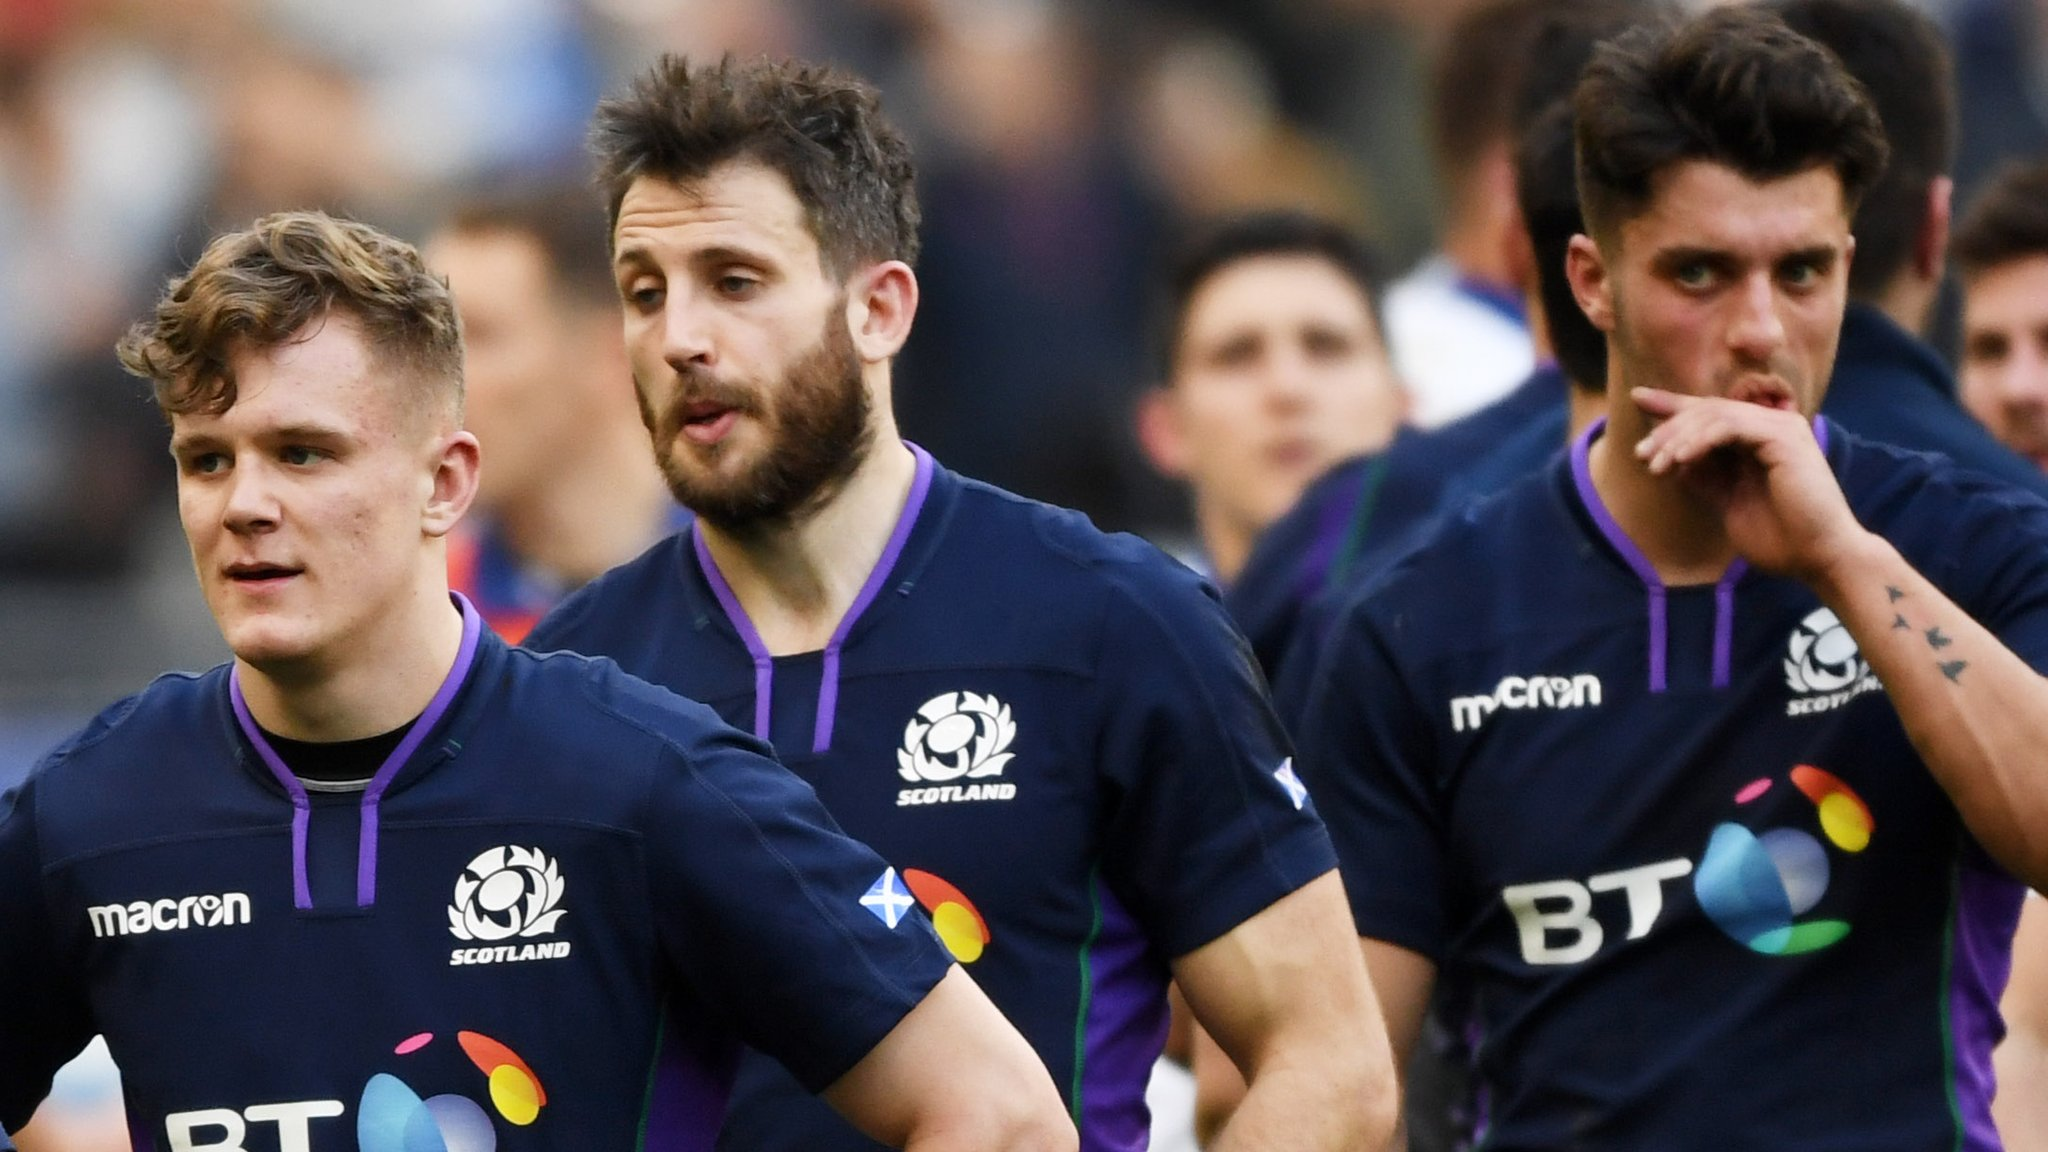 Scotland failed to match demands of jersey in France defeat - Townsend